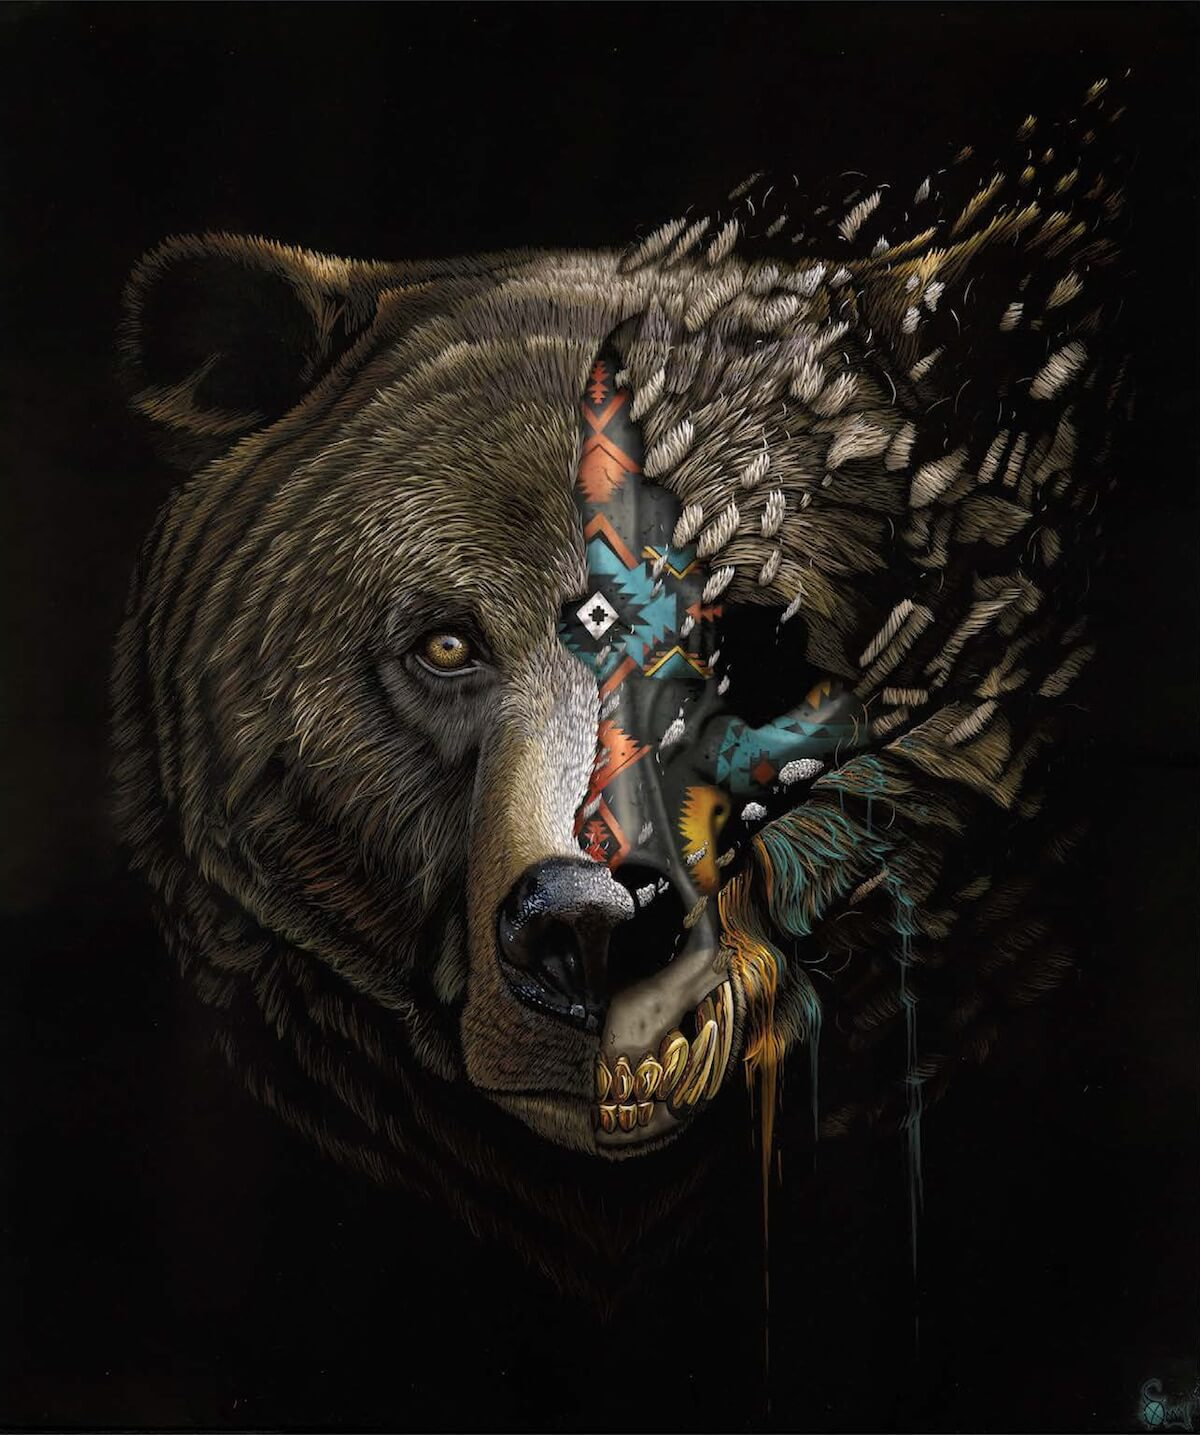 sonny animal paintings endangered street animals artist bear species speaks history awareness help grizzly advertisement lives